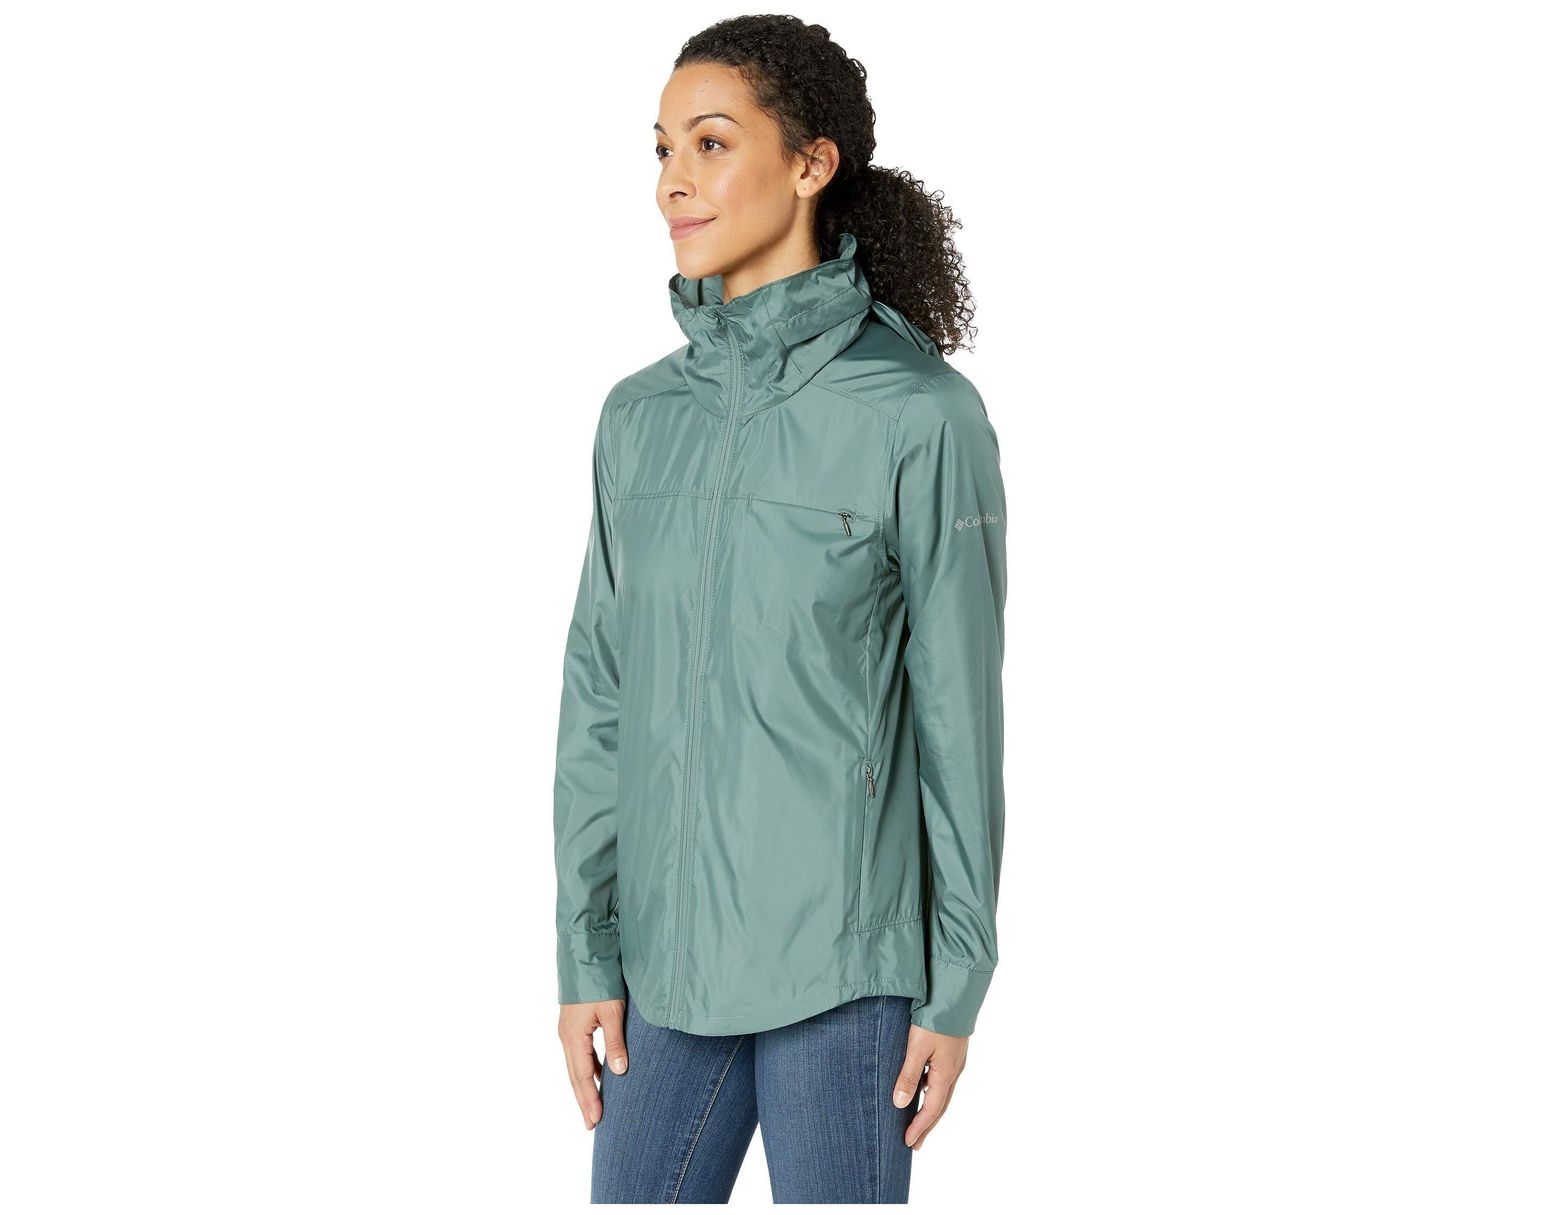 a9413457b Columbia Sustina Springs Windbreaker in Green - Save 24% - Lyst